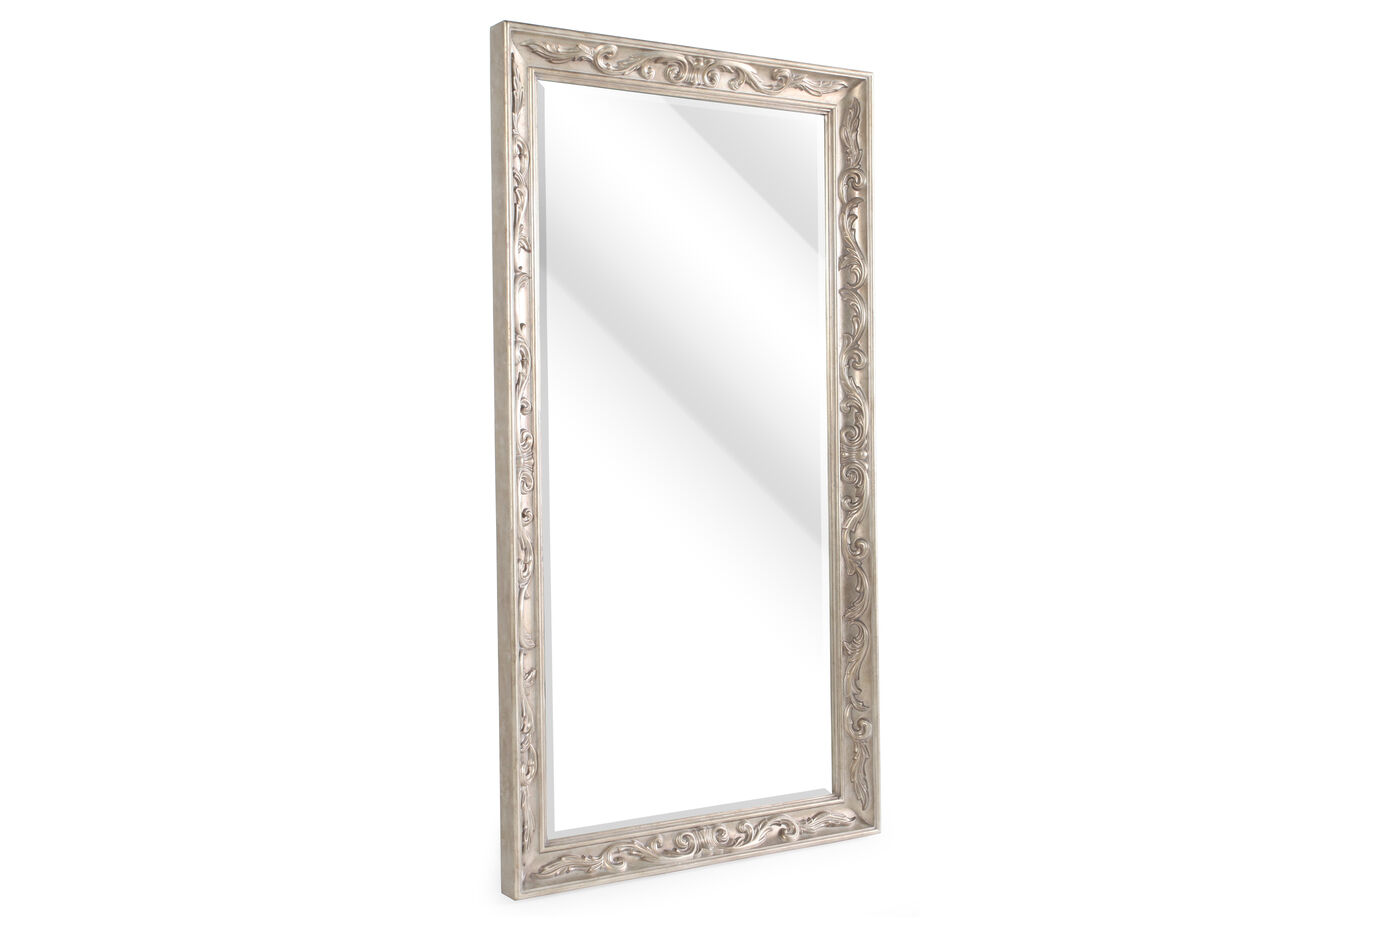 80 Contemporary Carved Floor Mirror In Metallic Gold